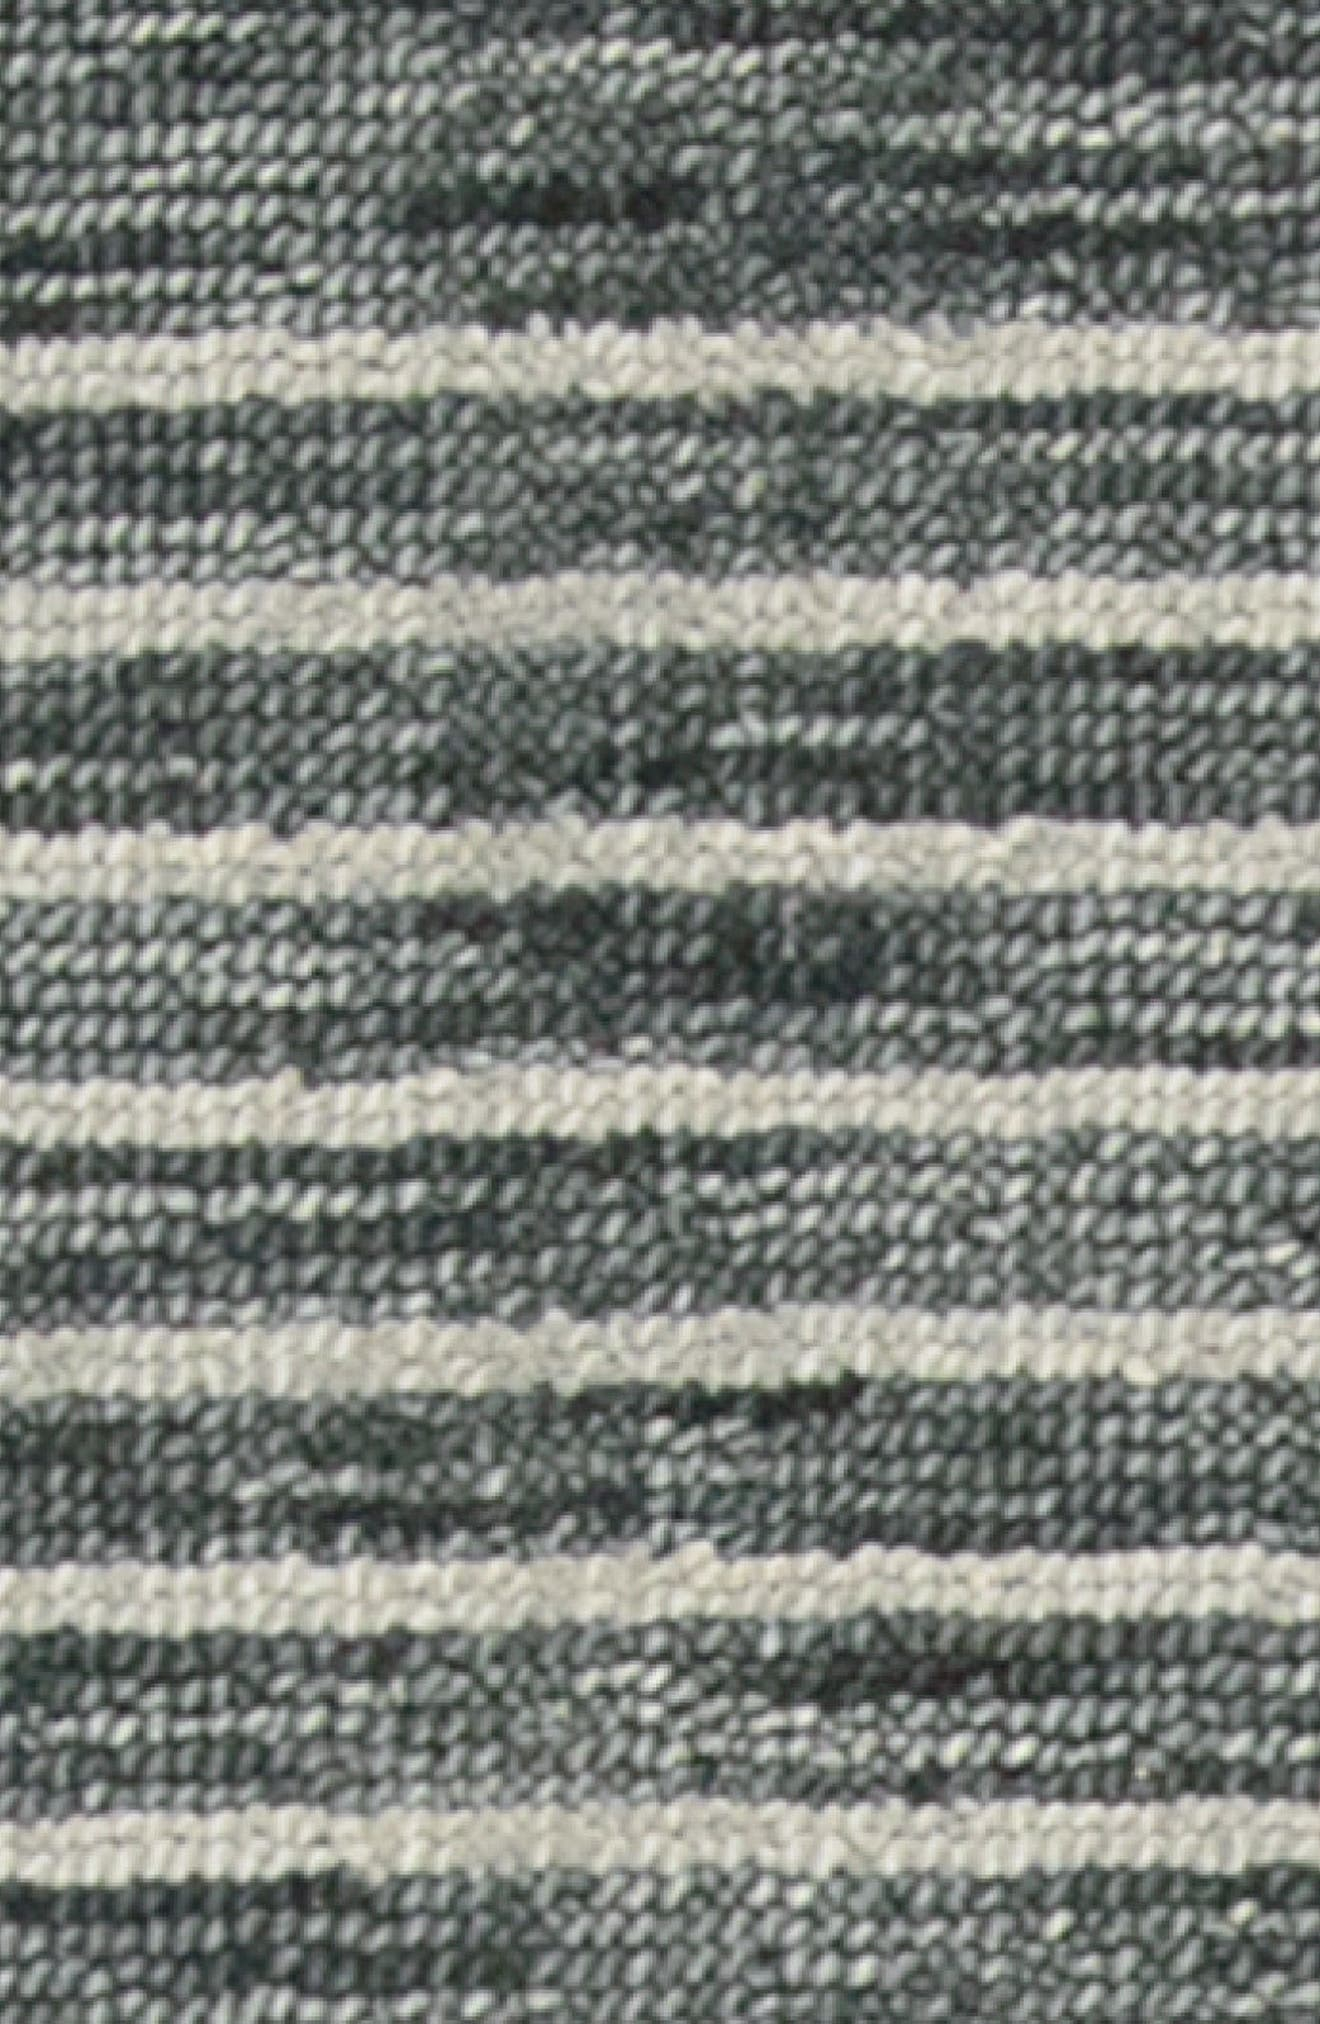 Tundra Handwoven Area Rug,                             Alternate thumbnail 2, color,                             030